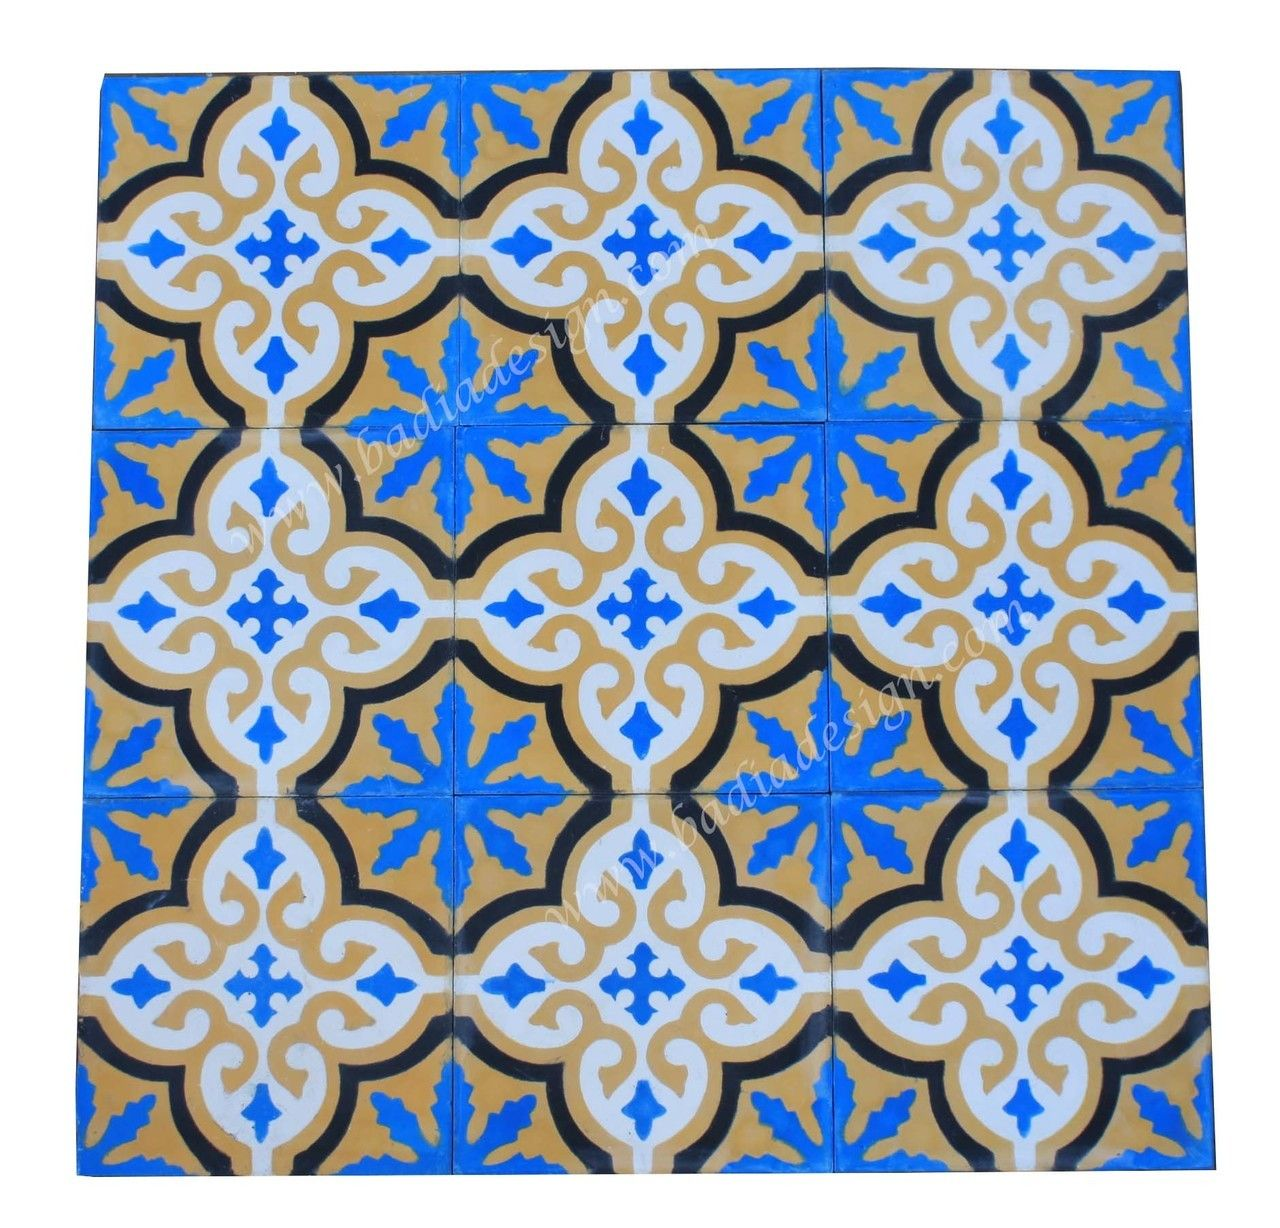 Badia Design Inc Store - Moroccan Hand Painted Cement Tile - CT086 ...